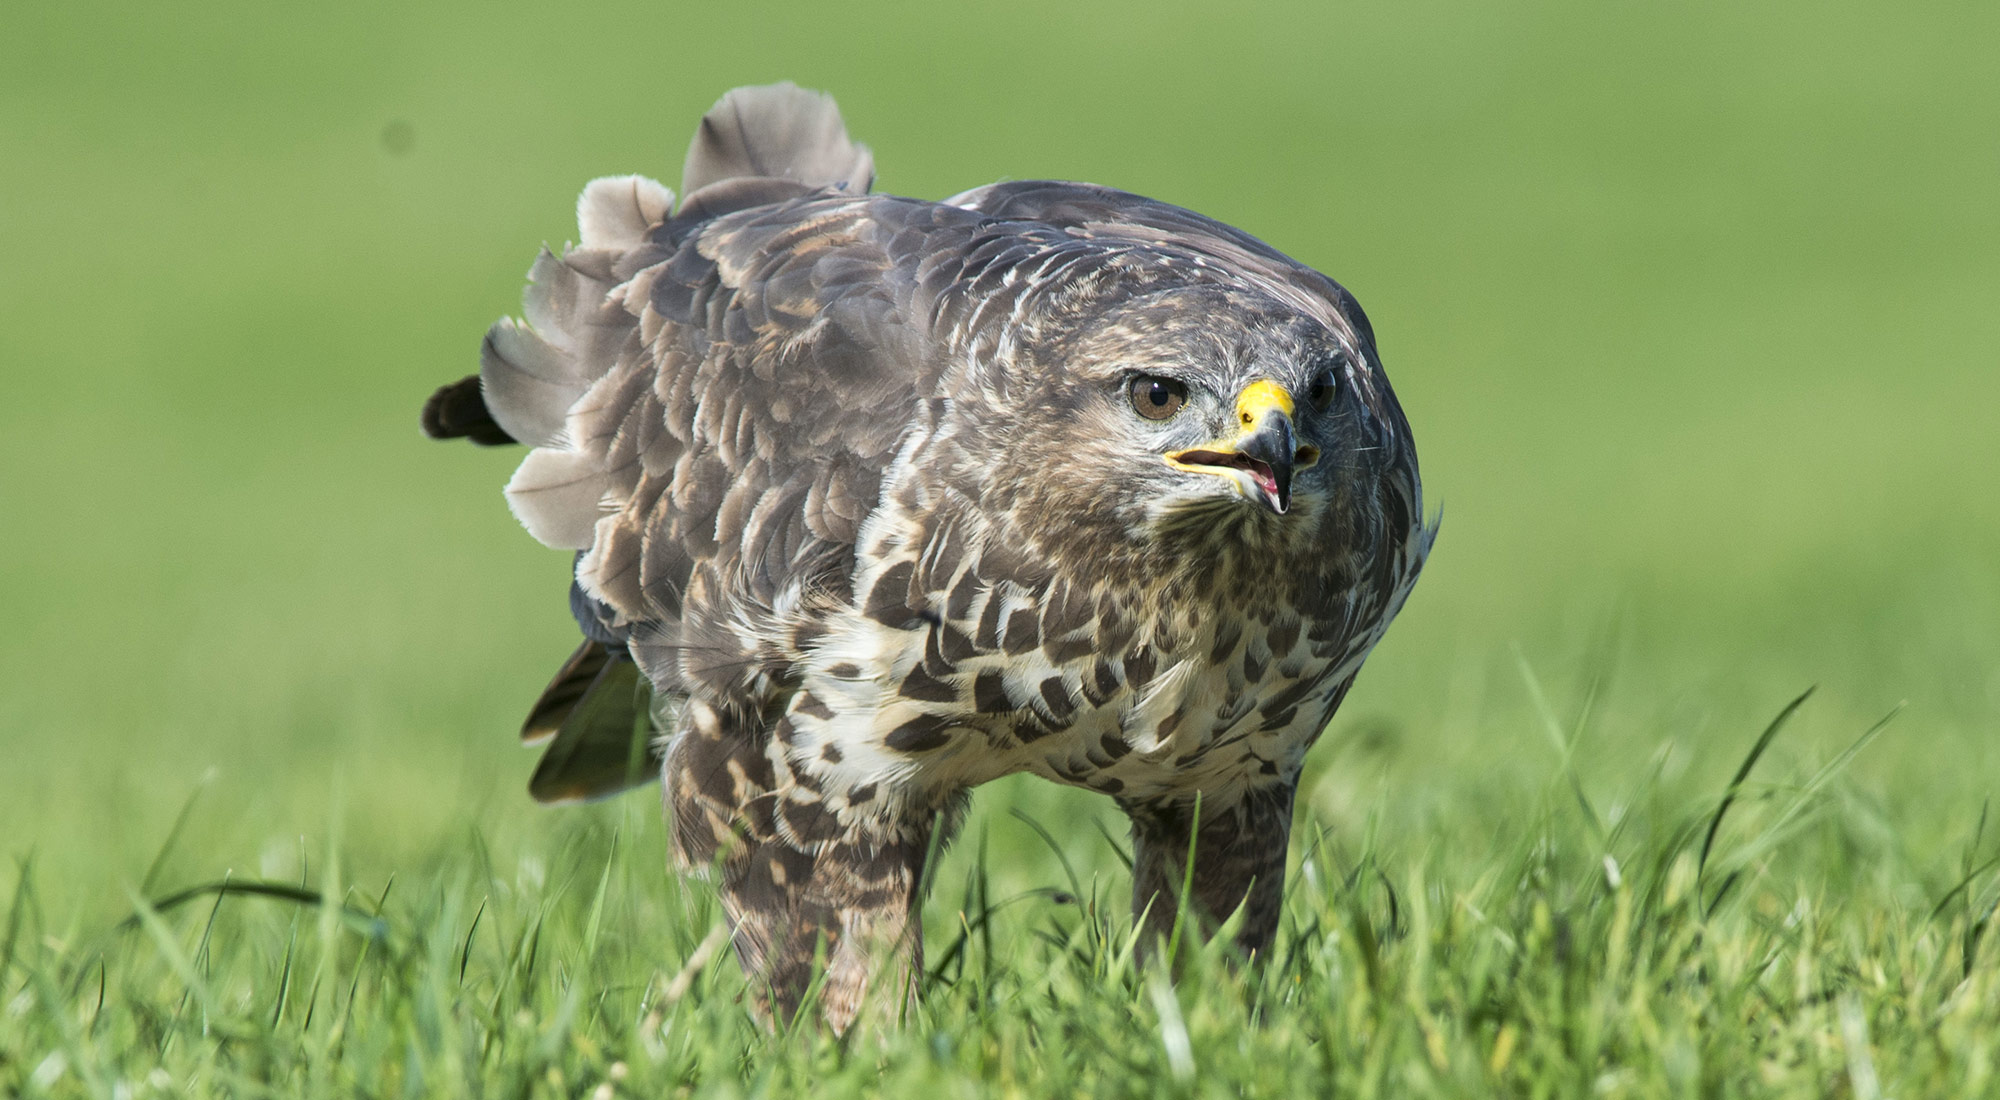 Wildlife Photography Hides Hide photography Bourne Lincolnshire buzzard buteo buteo green grass juvenile adult bird of prey eating pheasant red kite feeding roadkill tom robinson